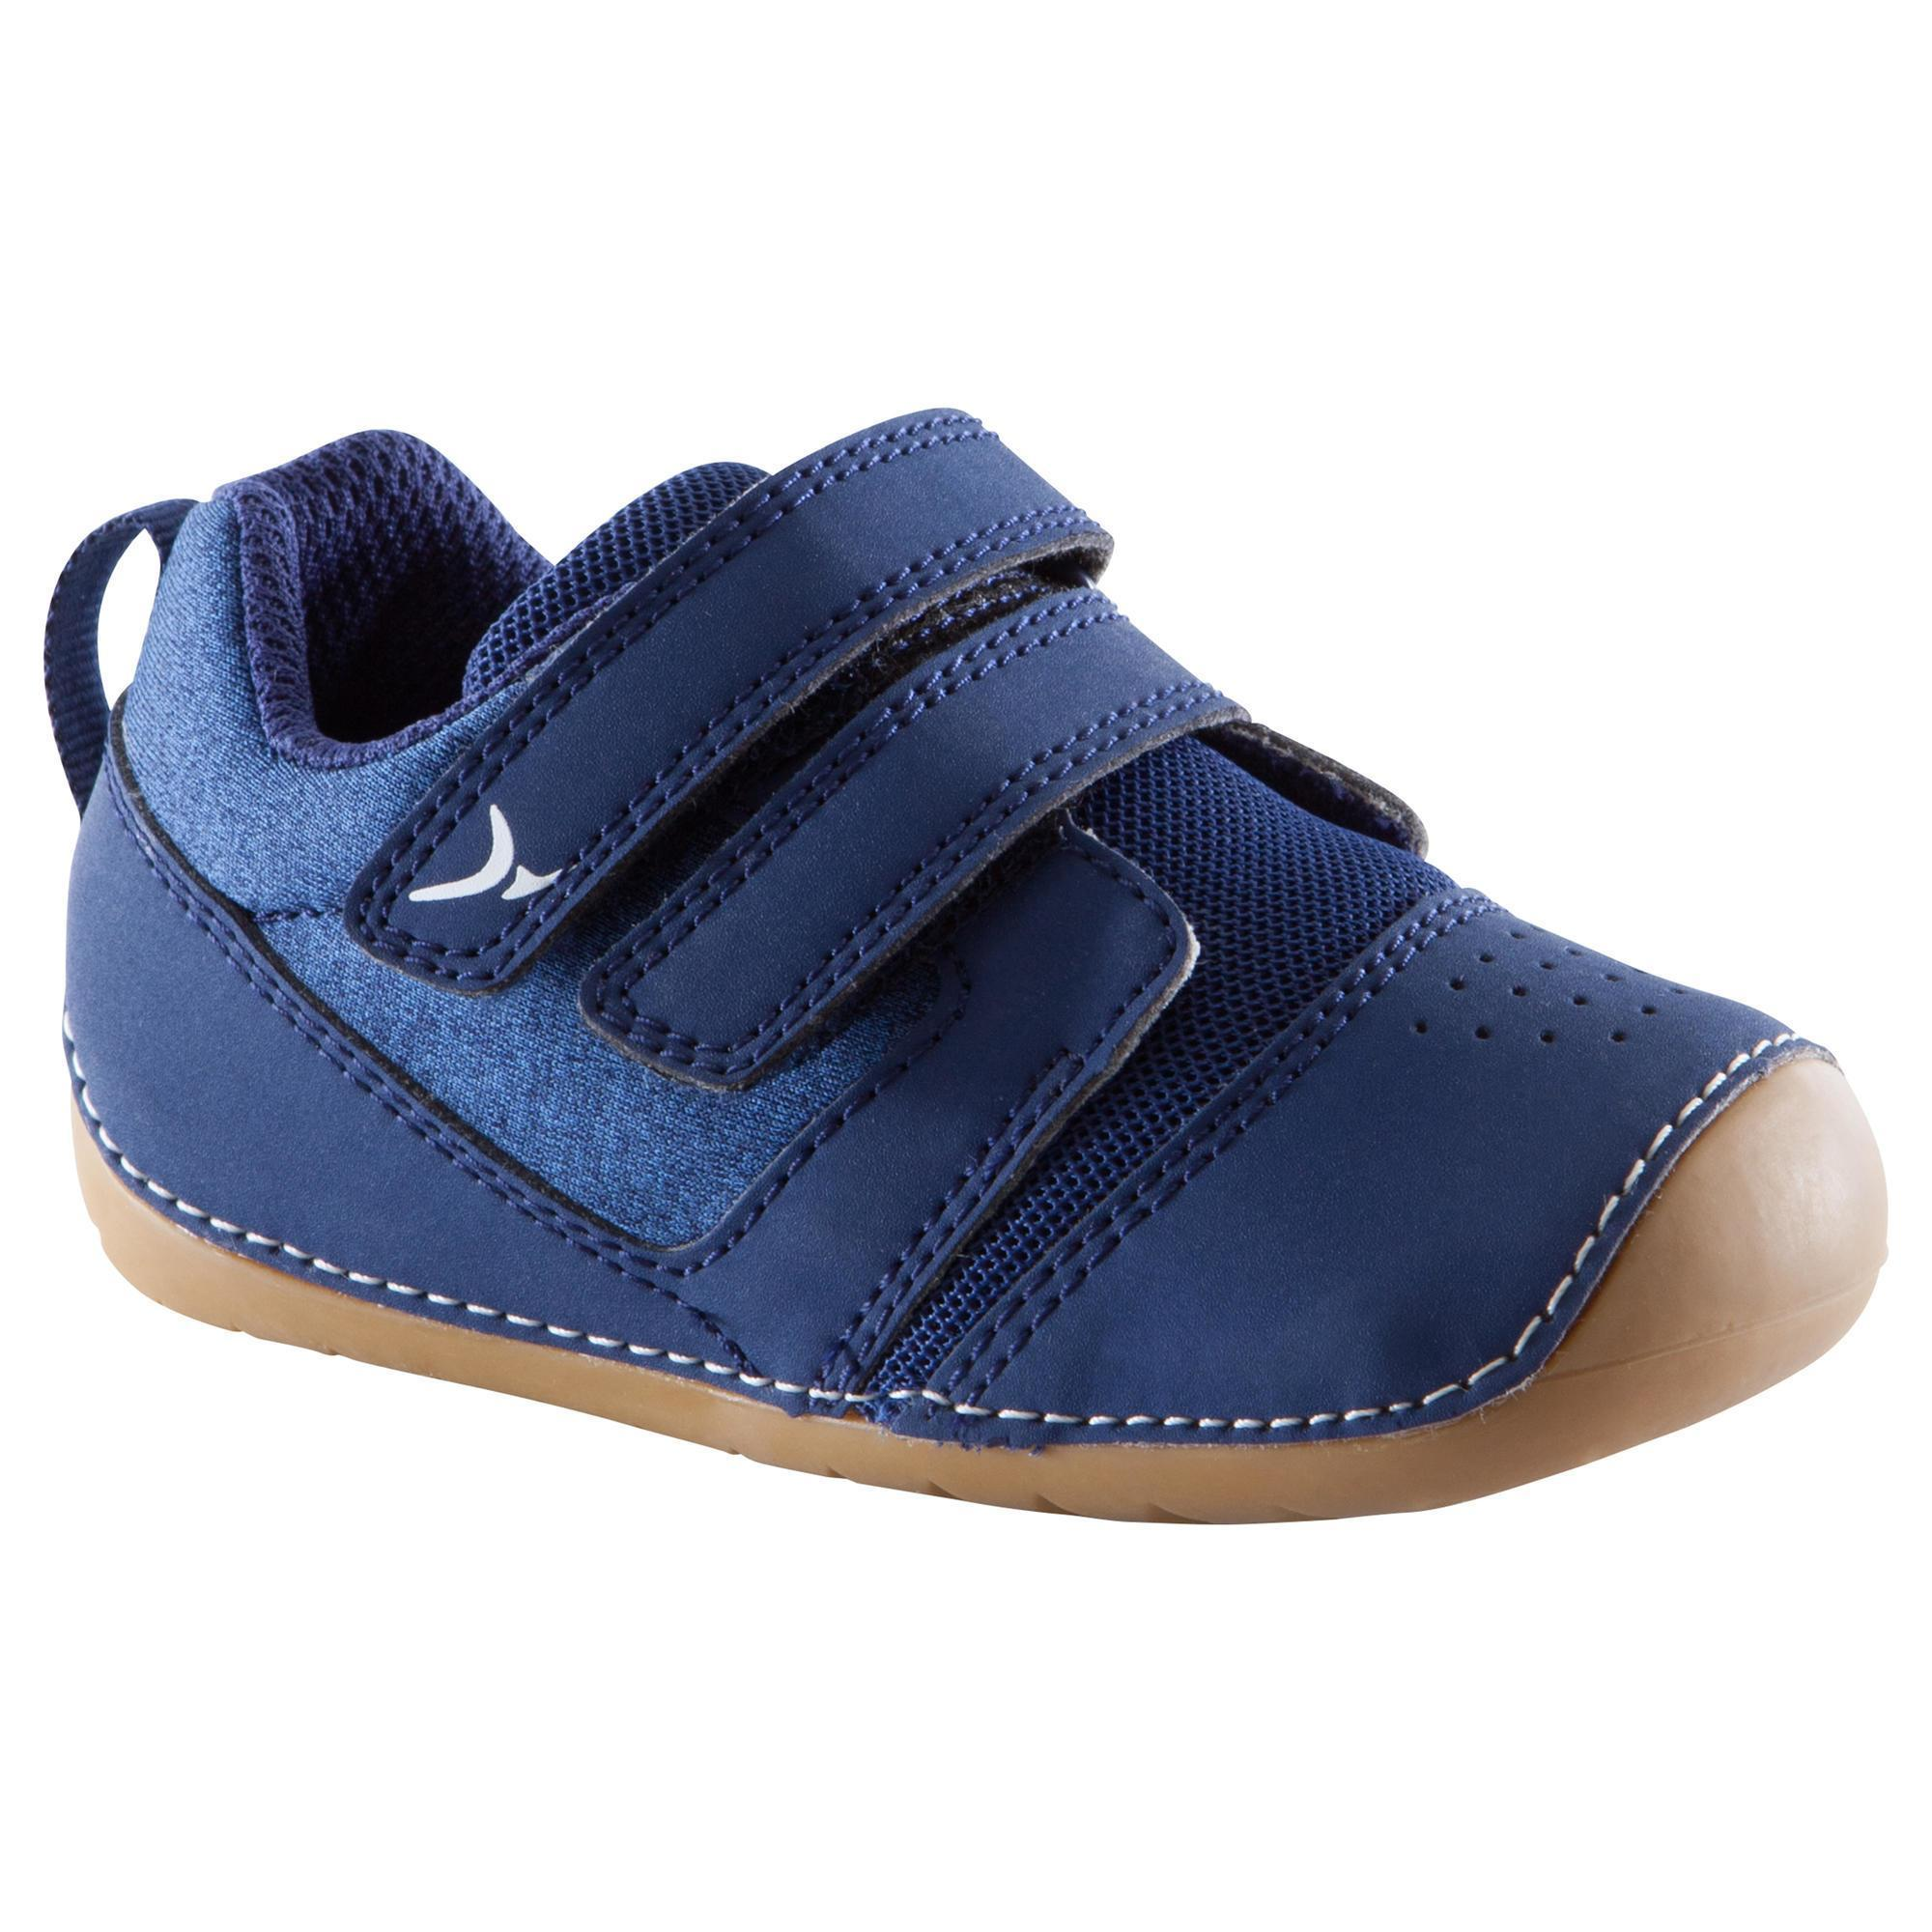 I Learn Chaussures Gym Bébé 500 Marinemarron Chaussant PXZTkilwOu